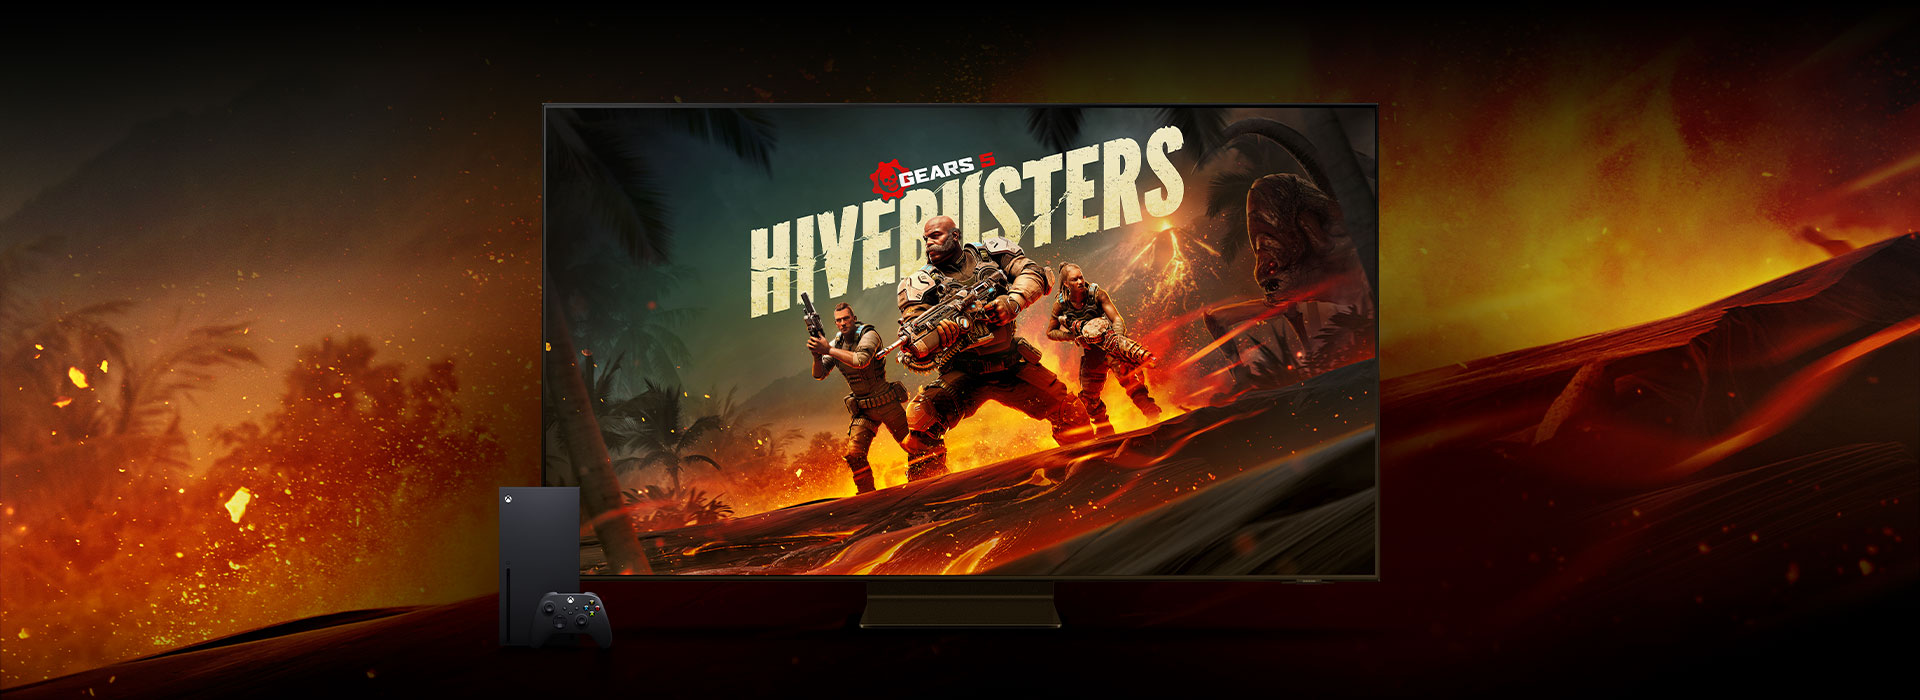 Gears 5, Hivebusters, A flat screen Samsung TV with a Gears 5 screenshot sits next to an Xbox Series X against a fiery background.